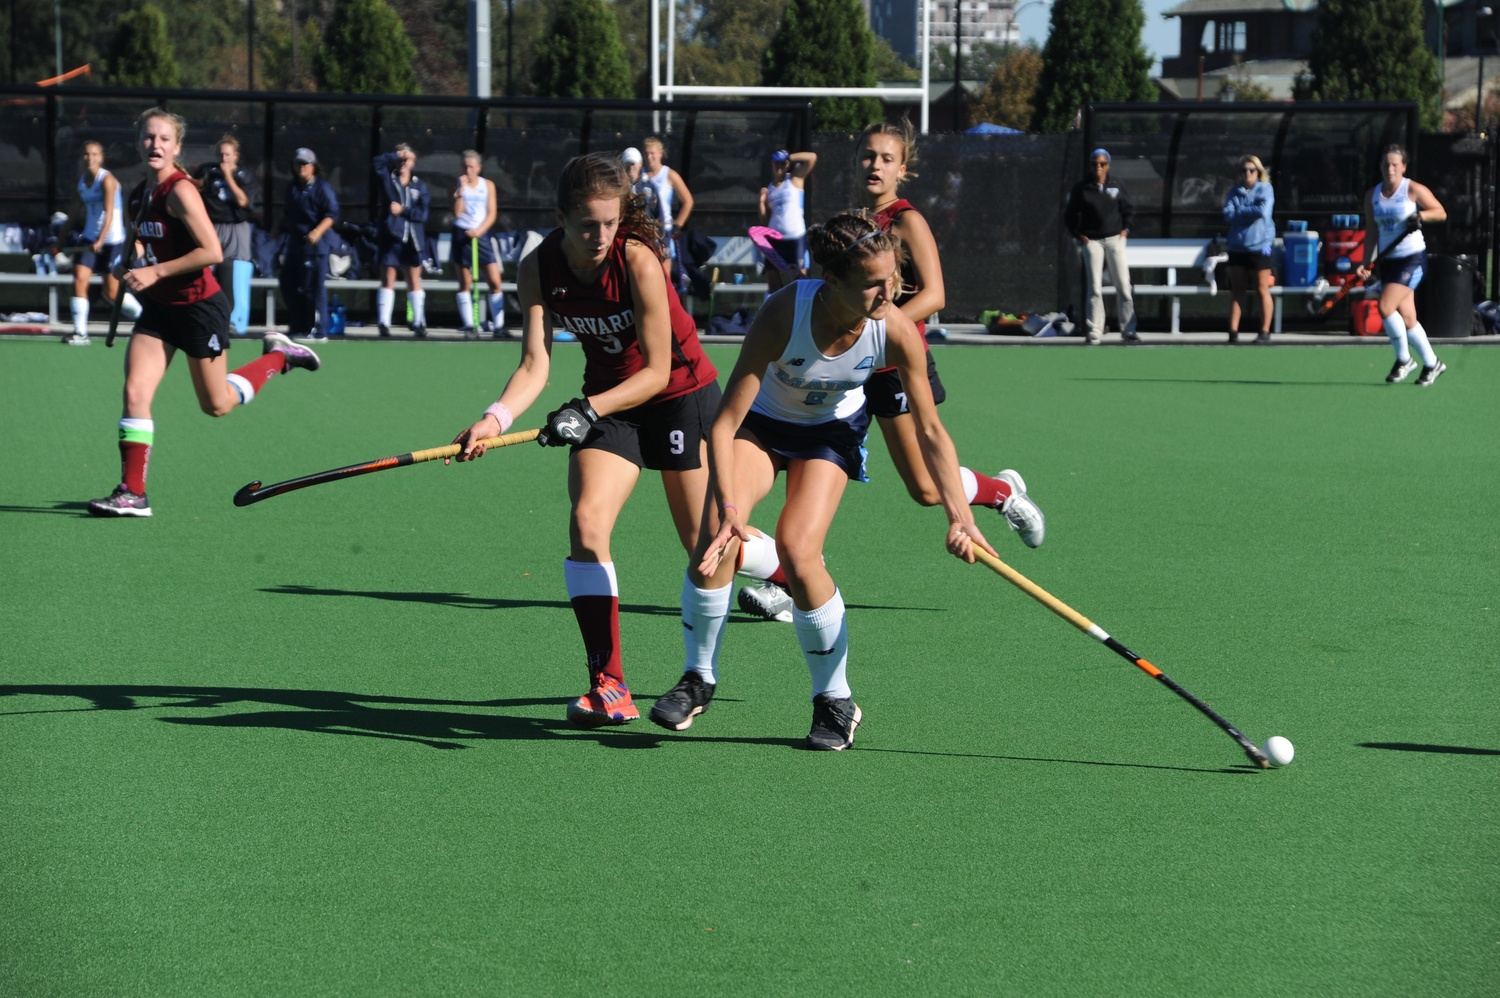 Junior back Olivia Allin and her Harvard teammates came back from California with a 2-1 record after going toe-to-toe with some of the country's premier teams.